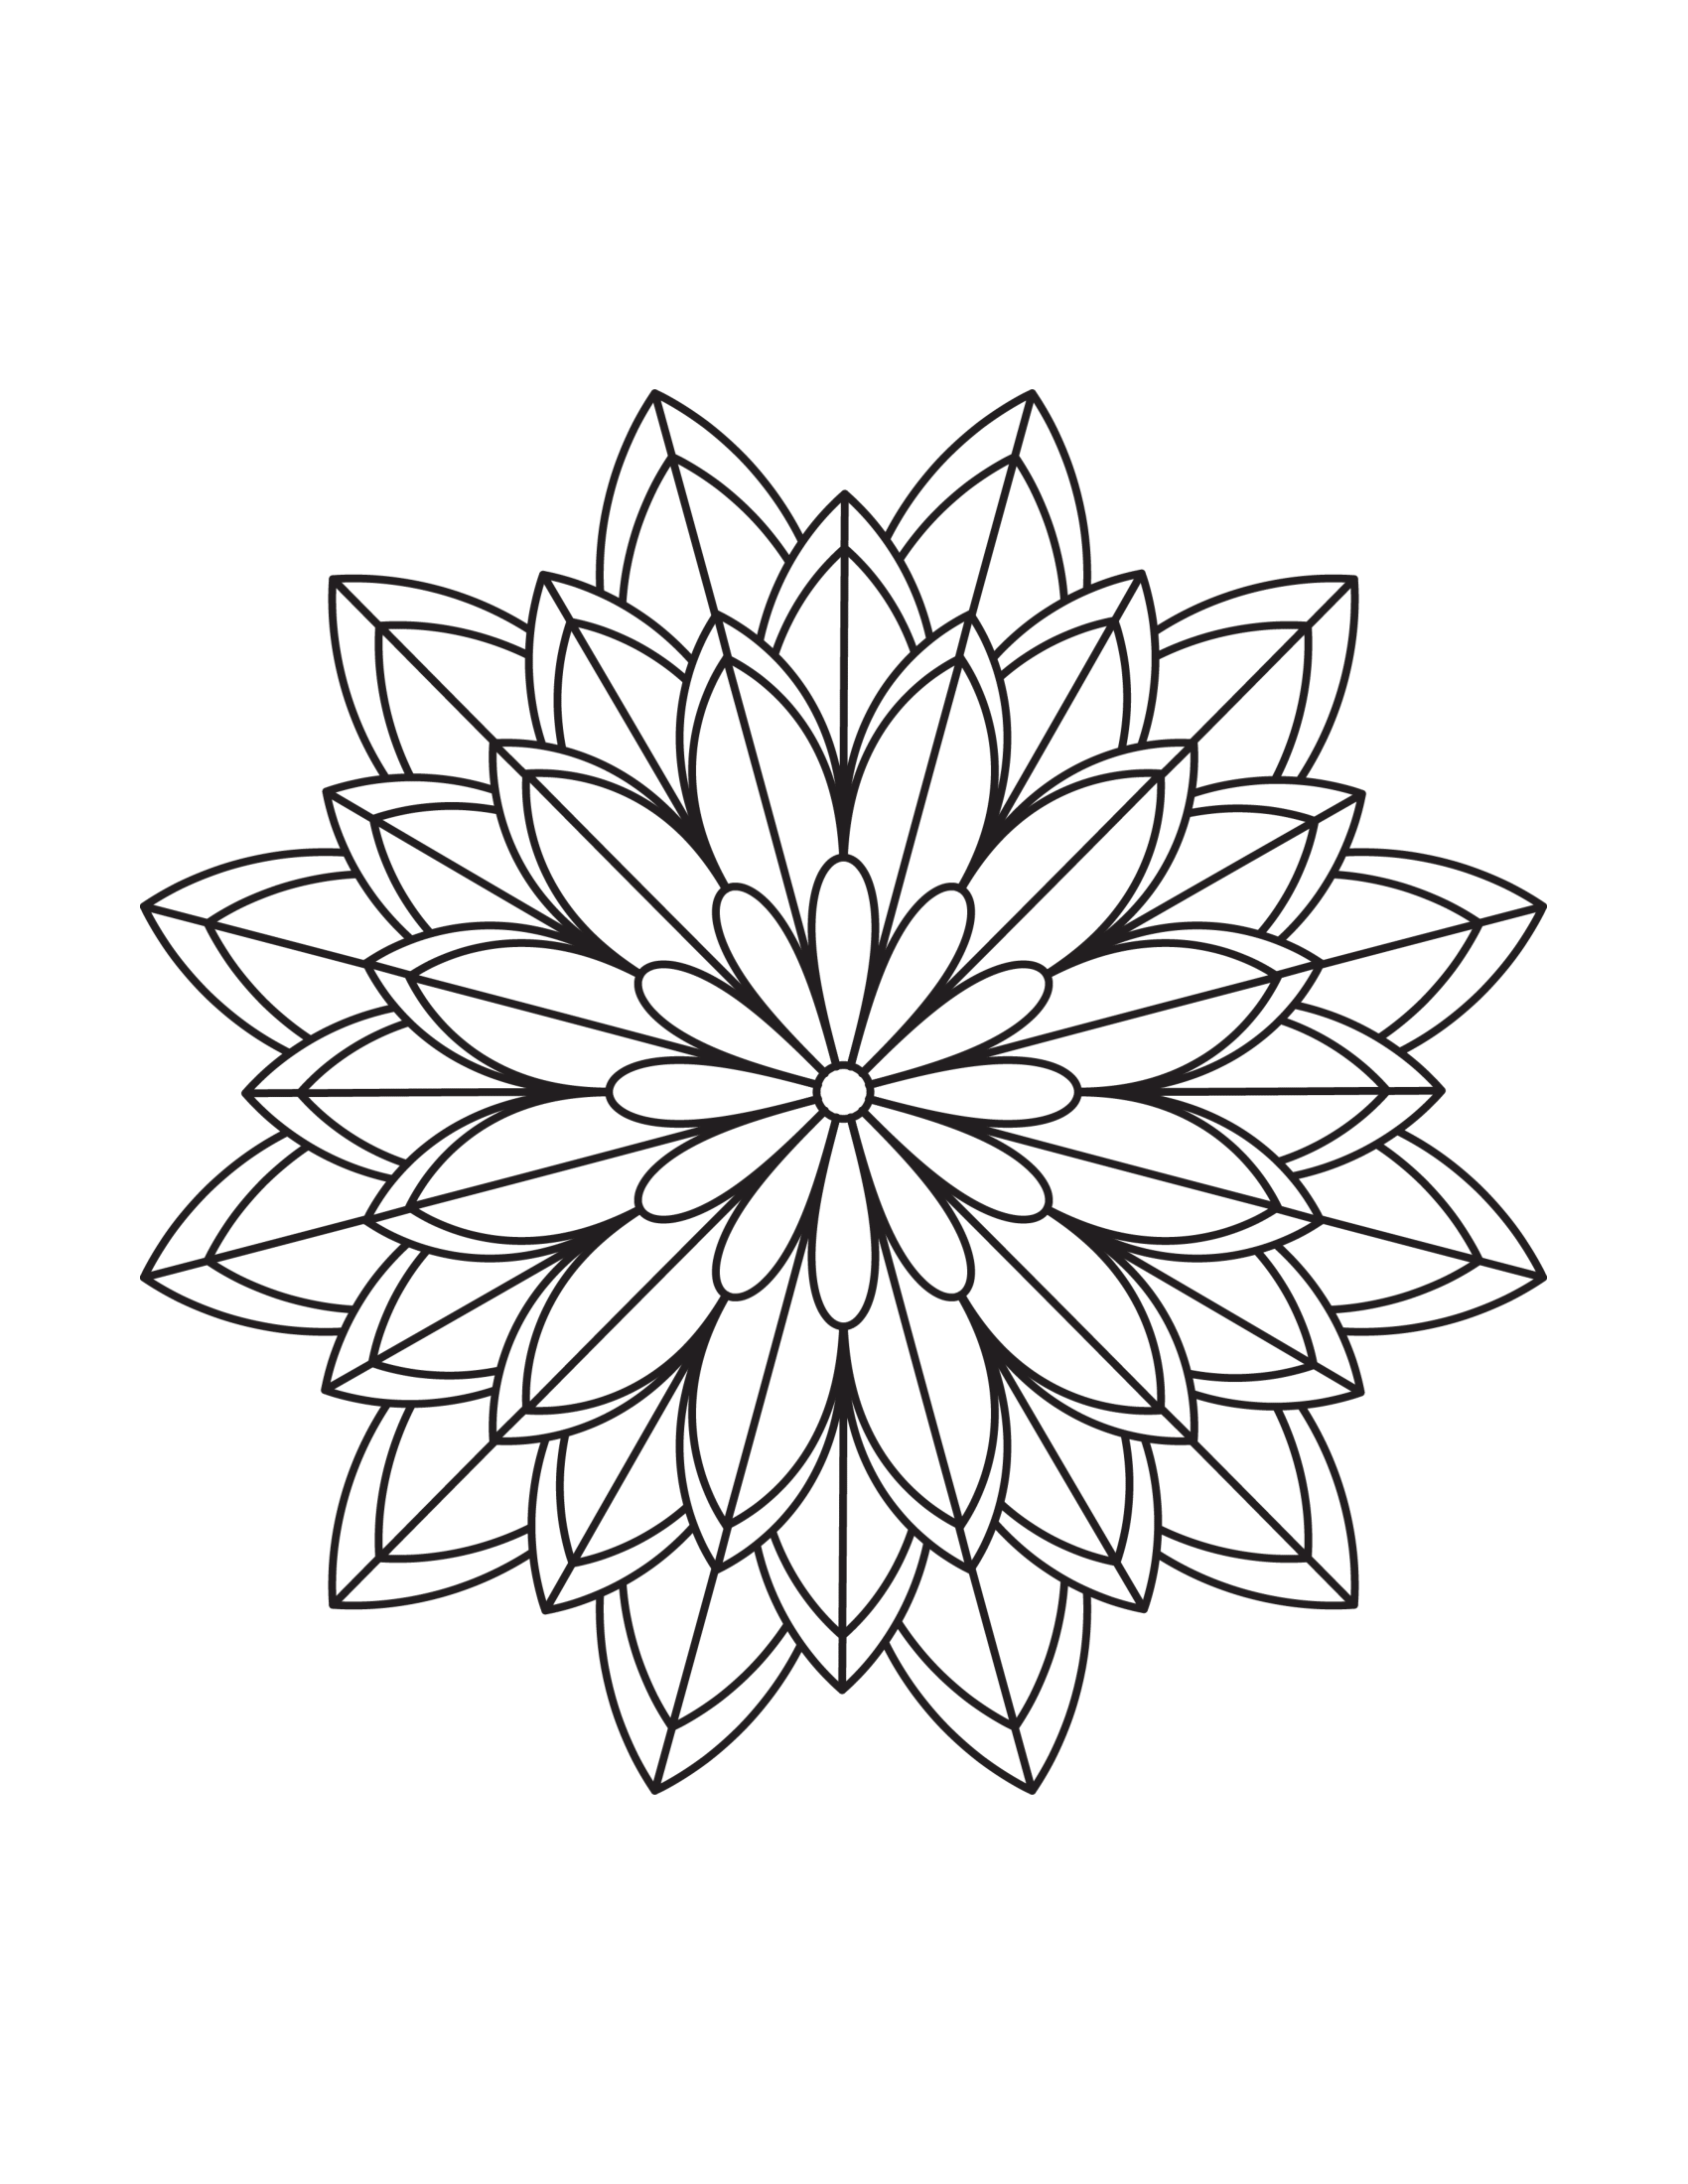 Simple Flower Mandala Coloring Pages Free Printables Mandala Coloring Flower Mandala Mandala Coloring Pages